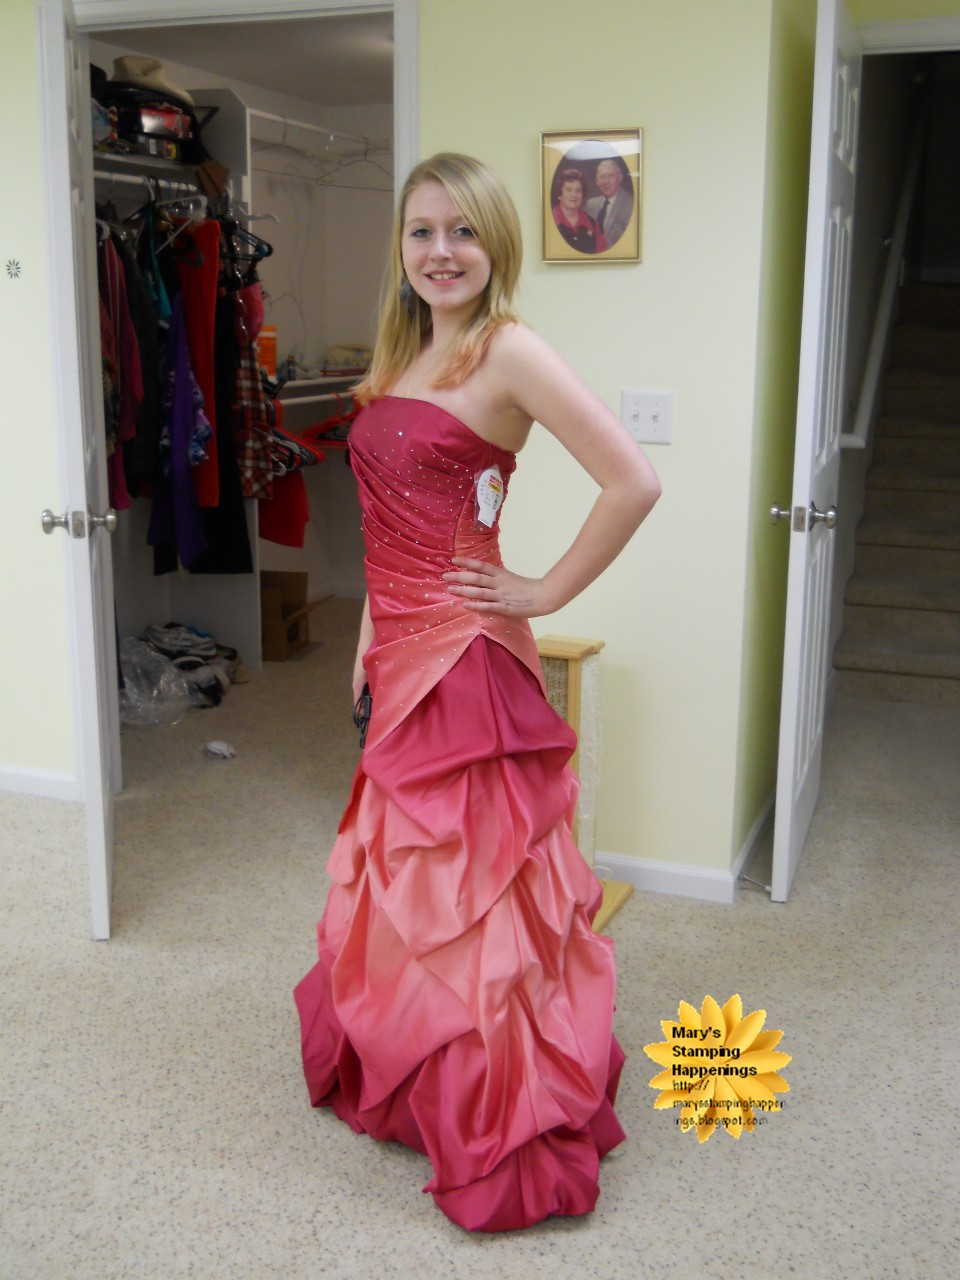 Mary\'s Stamping Happenings: Swimming and the Prom Dress the Story of ...